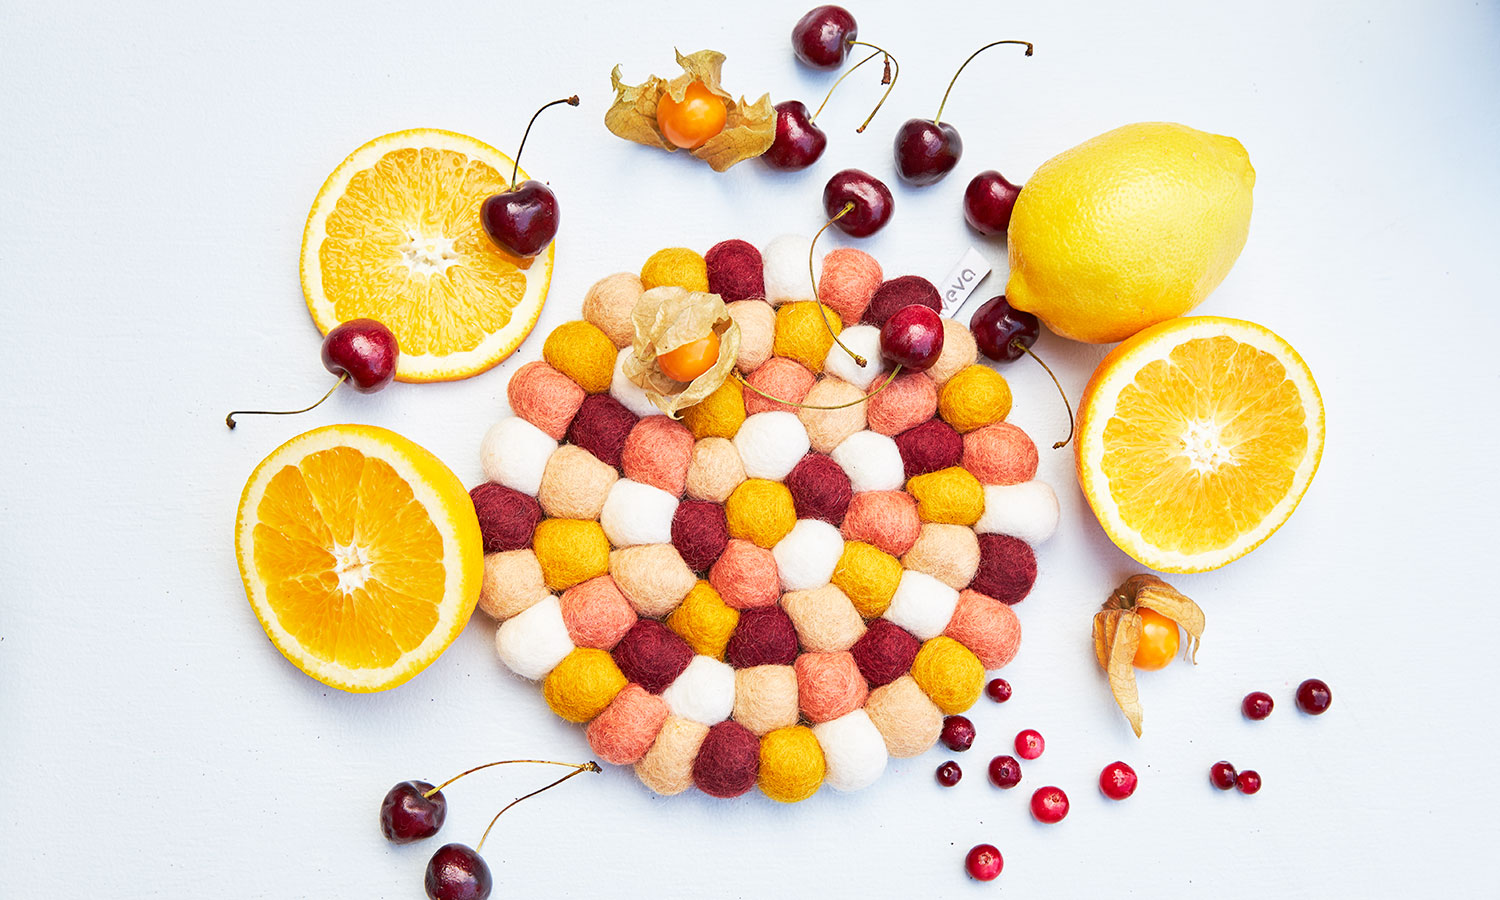 Round trivet in mixed colors with placed citrus fruits and berries next to the trivet.